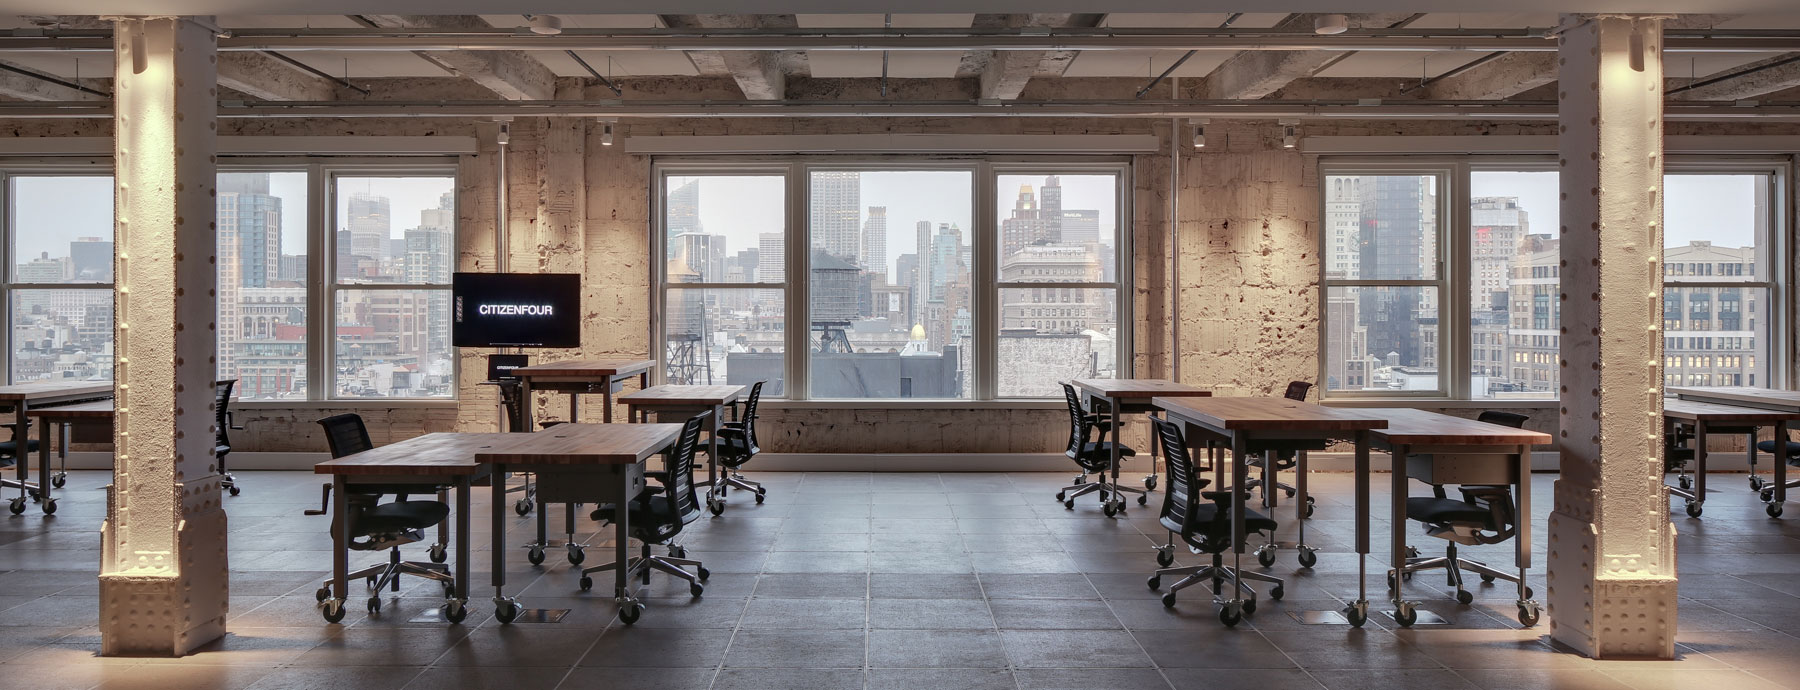 First Look Media, Landmark Building, Manhattan, New York City, Interior Architecture, Adaptable Office, Open Office, Artists Studio